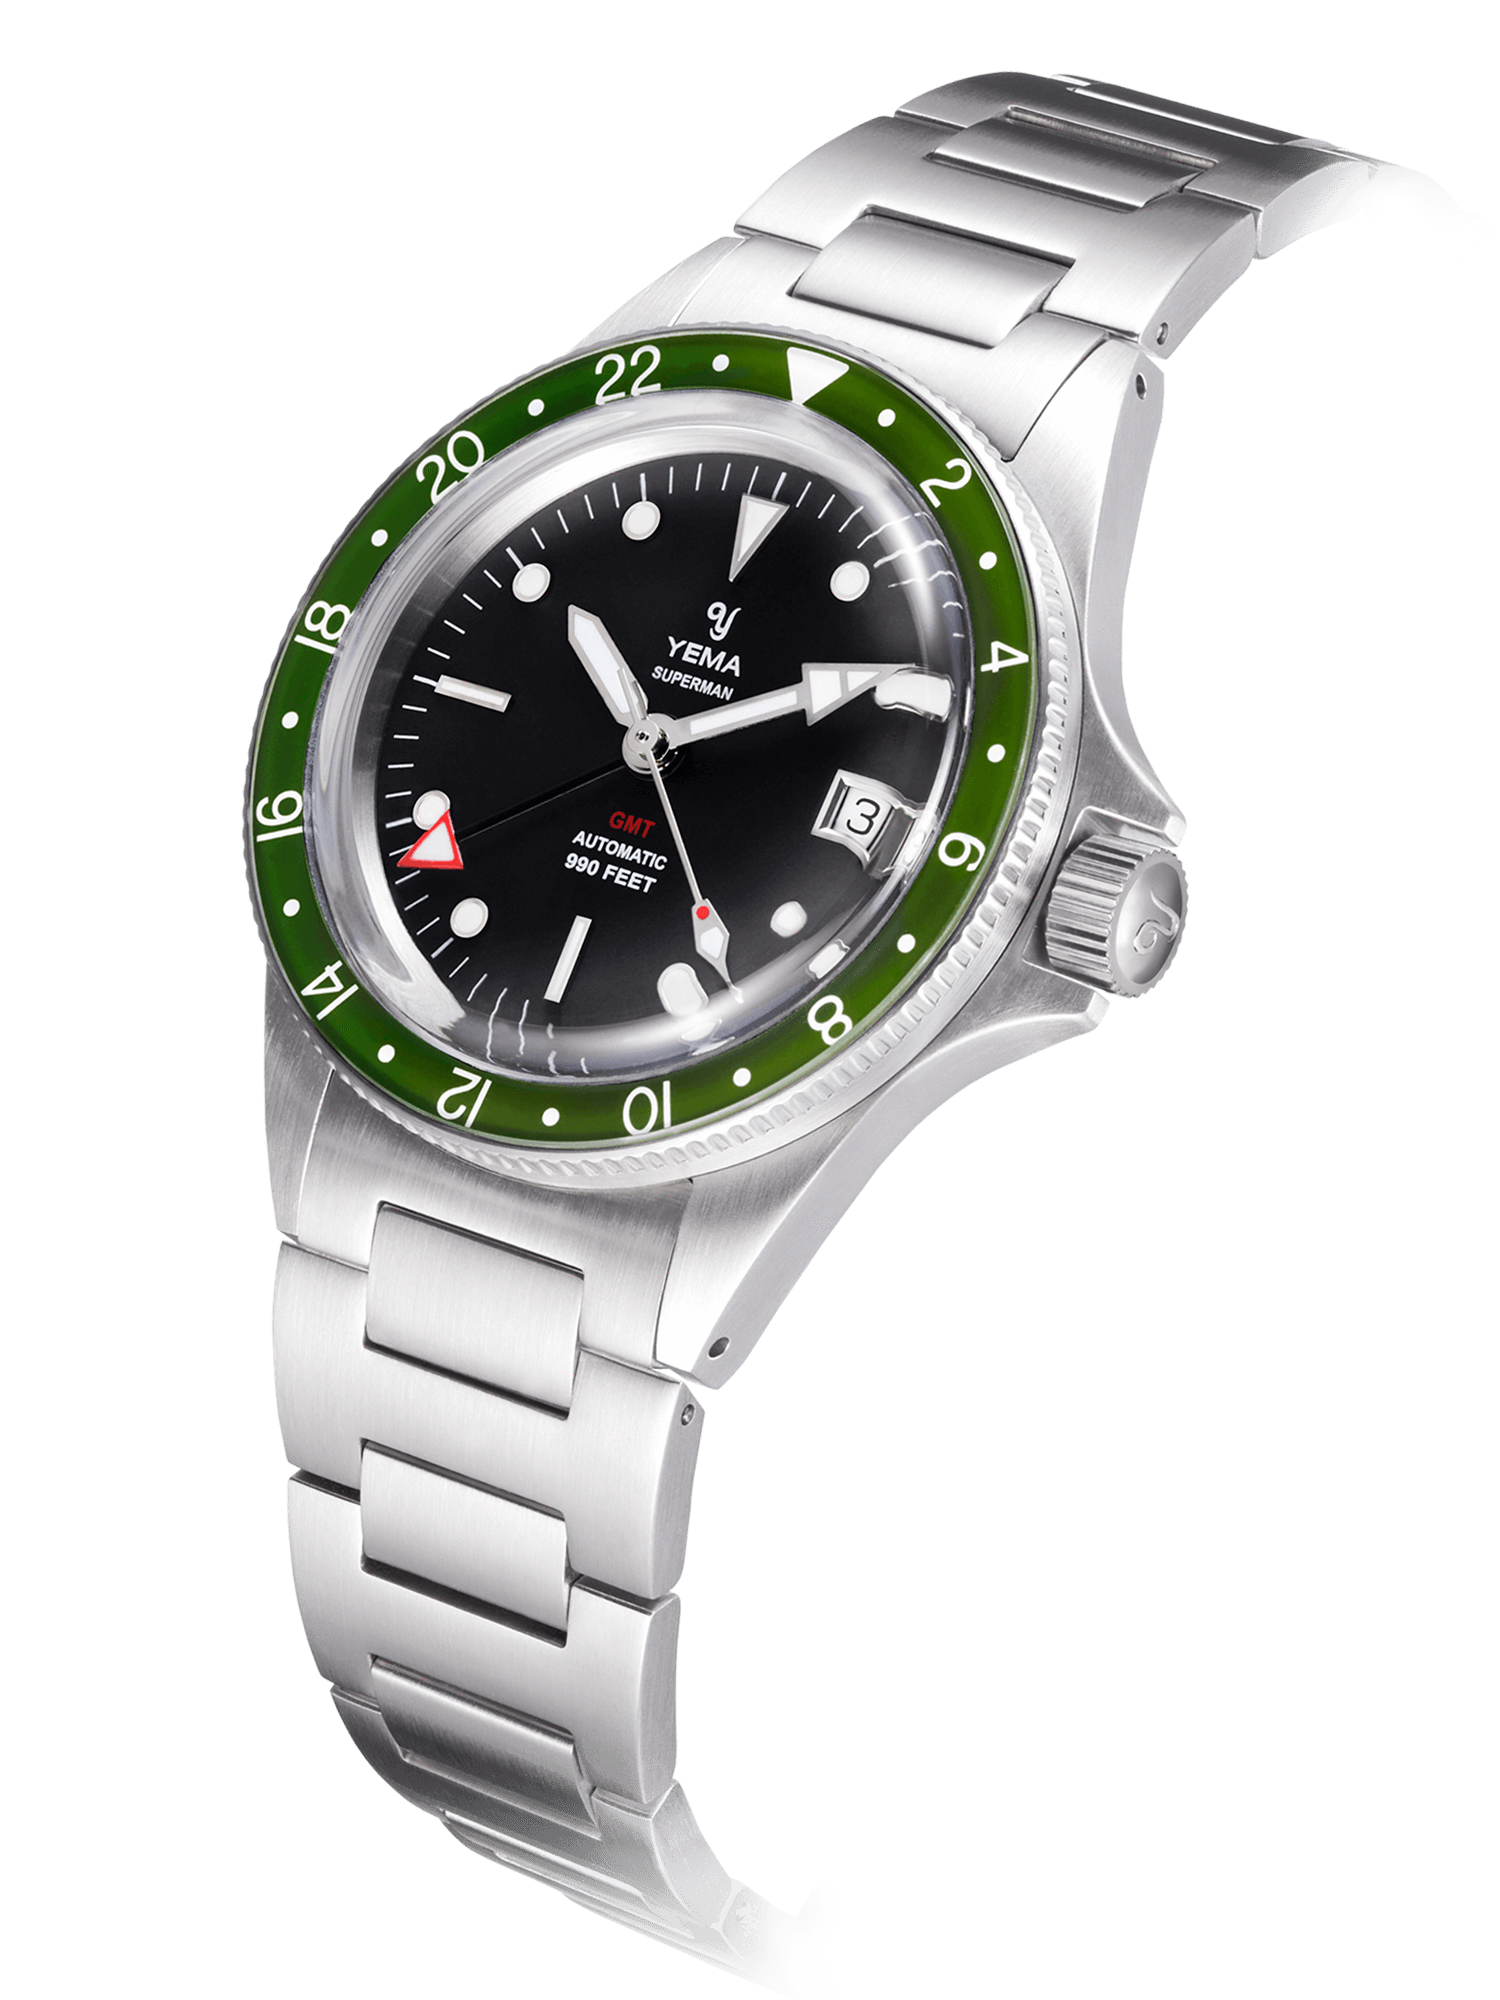 Superman GMT Khaki Green